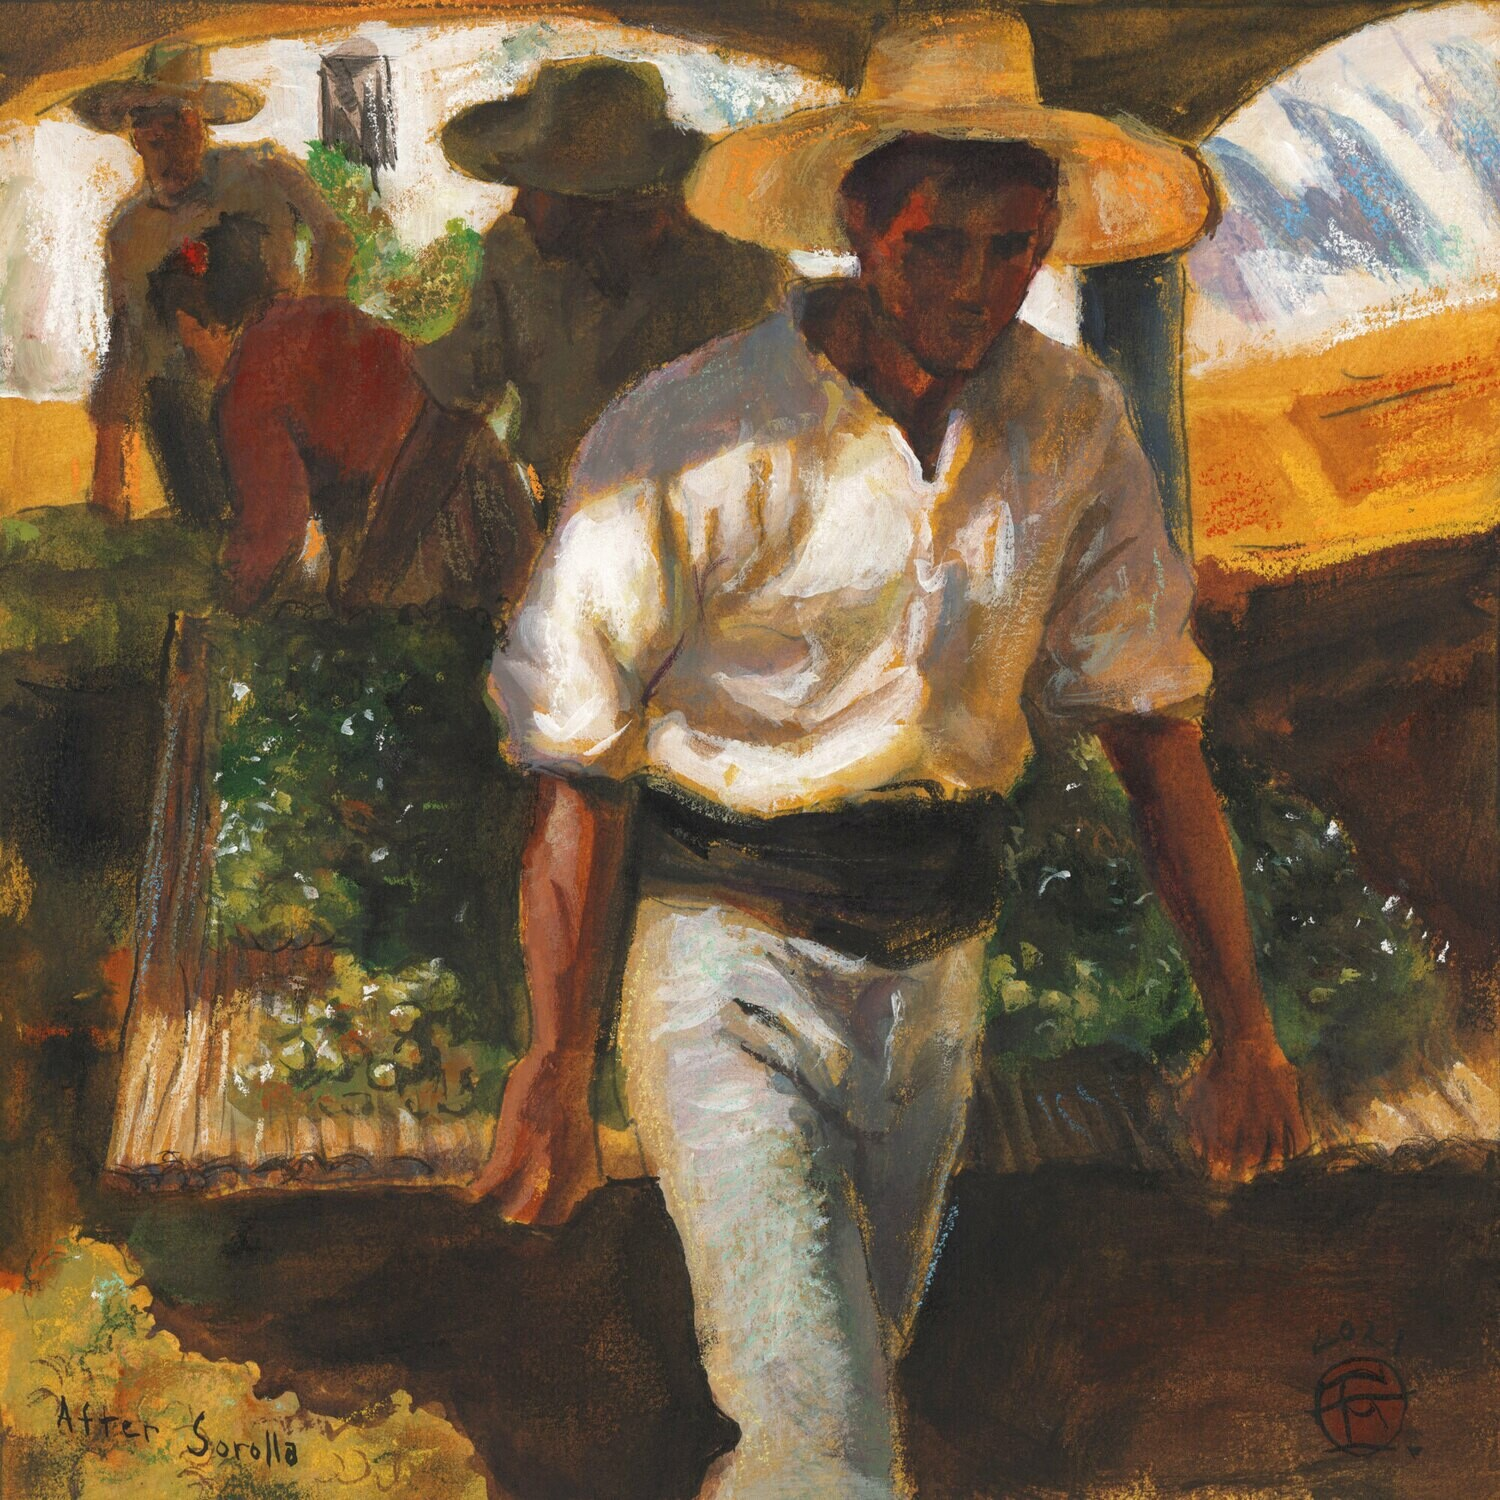 """Preparing Raisins"" (After Sorolla) Original Mixed-Media Painting on Paper"